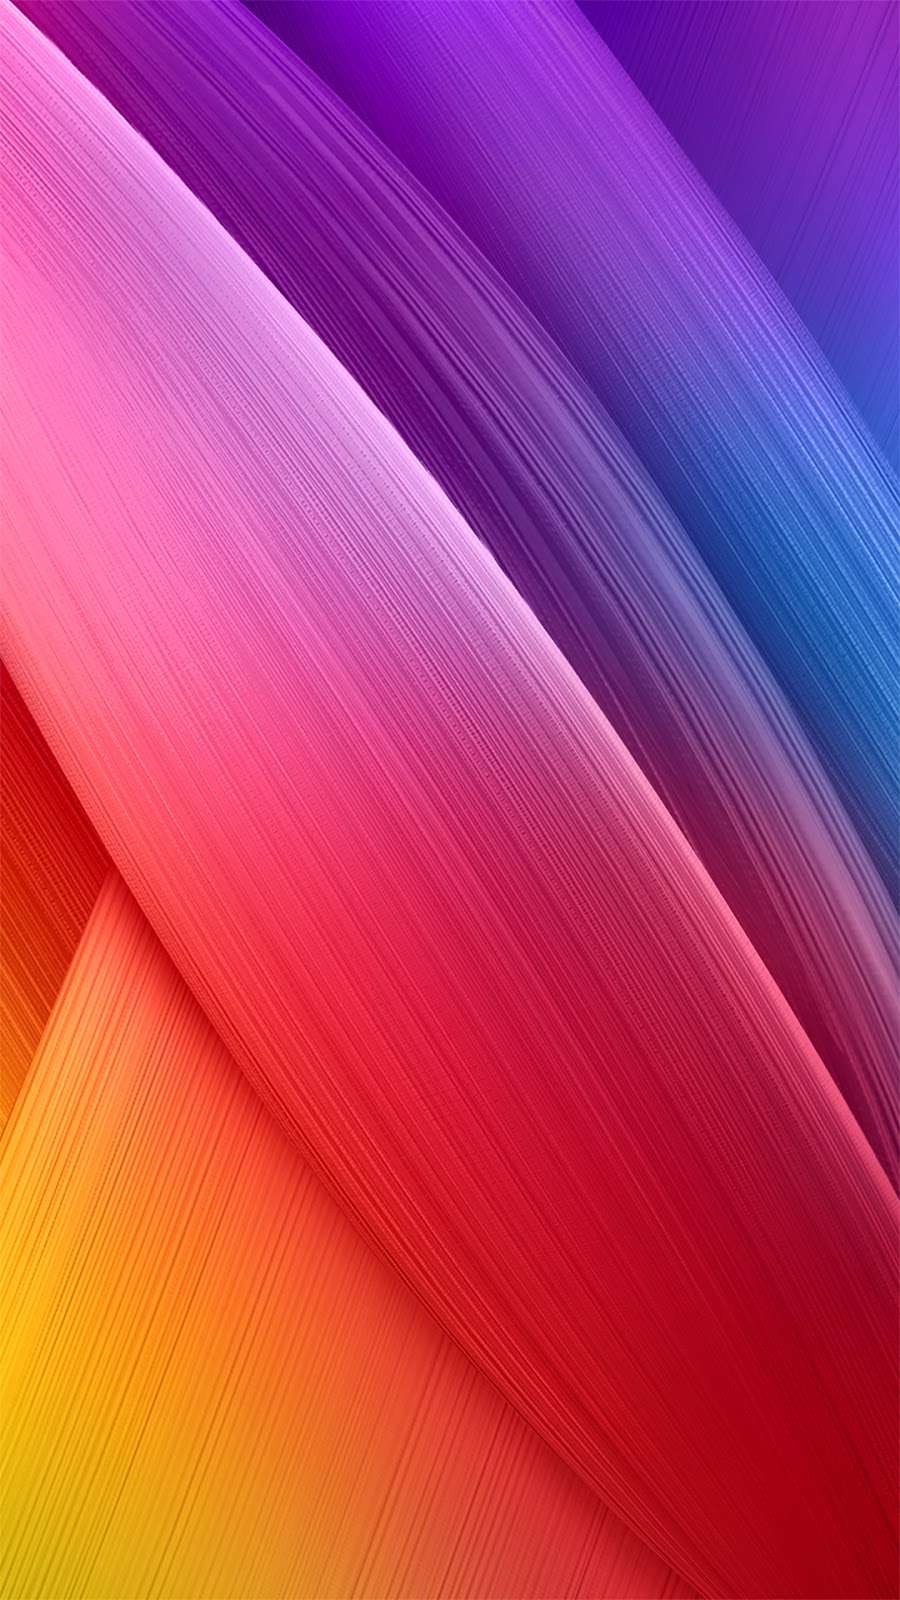 Love Wallpapers For Asus Zenfone 5 : Asus Zenfone 2 Wallpaper ~ Asus Zenfone Blog News, Tips, Tutorial, Download and ROM